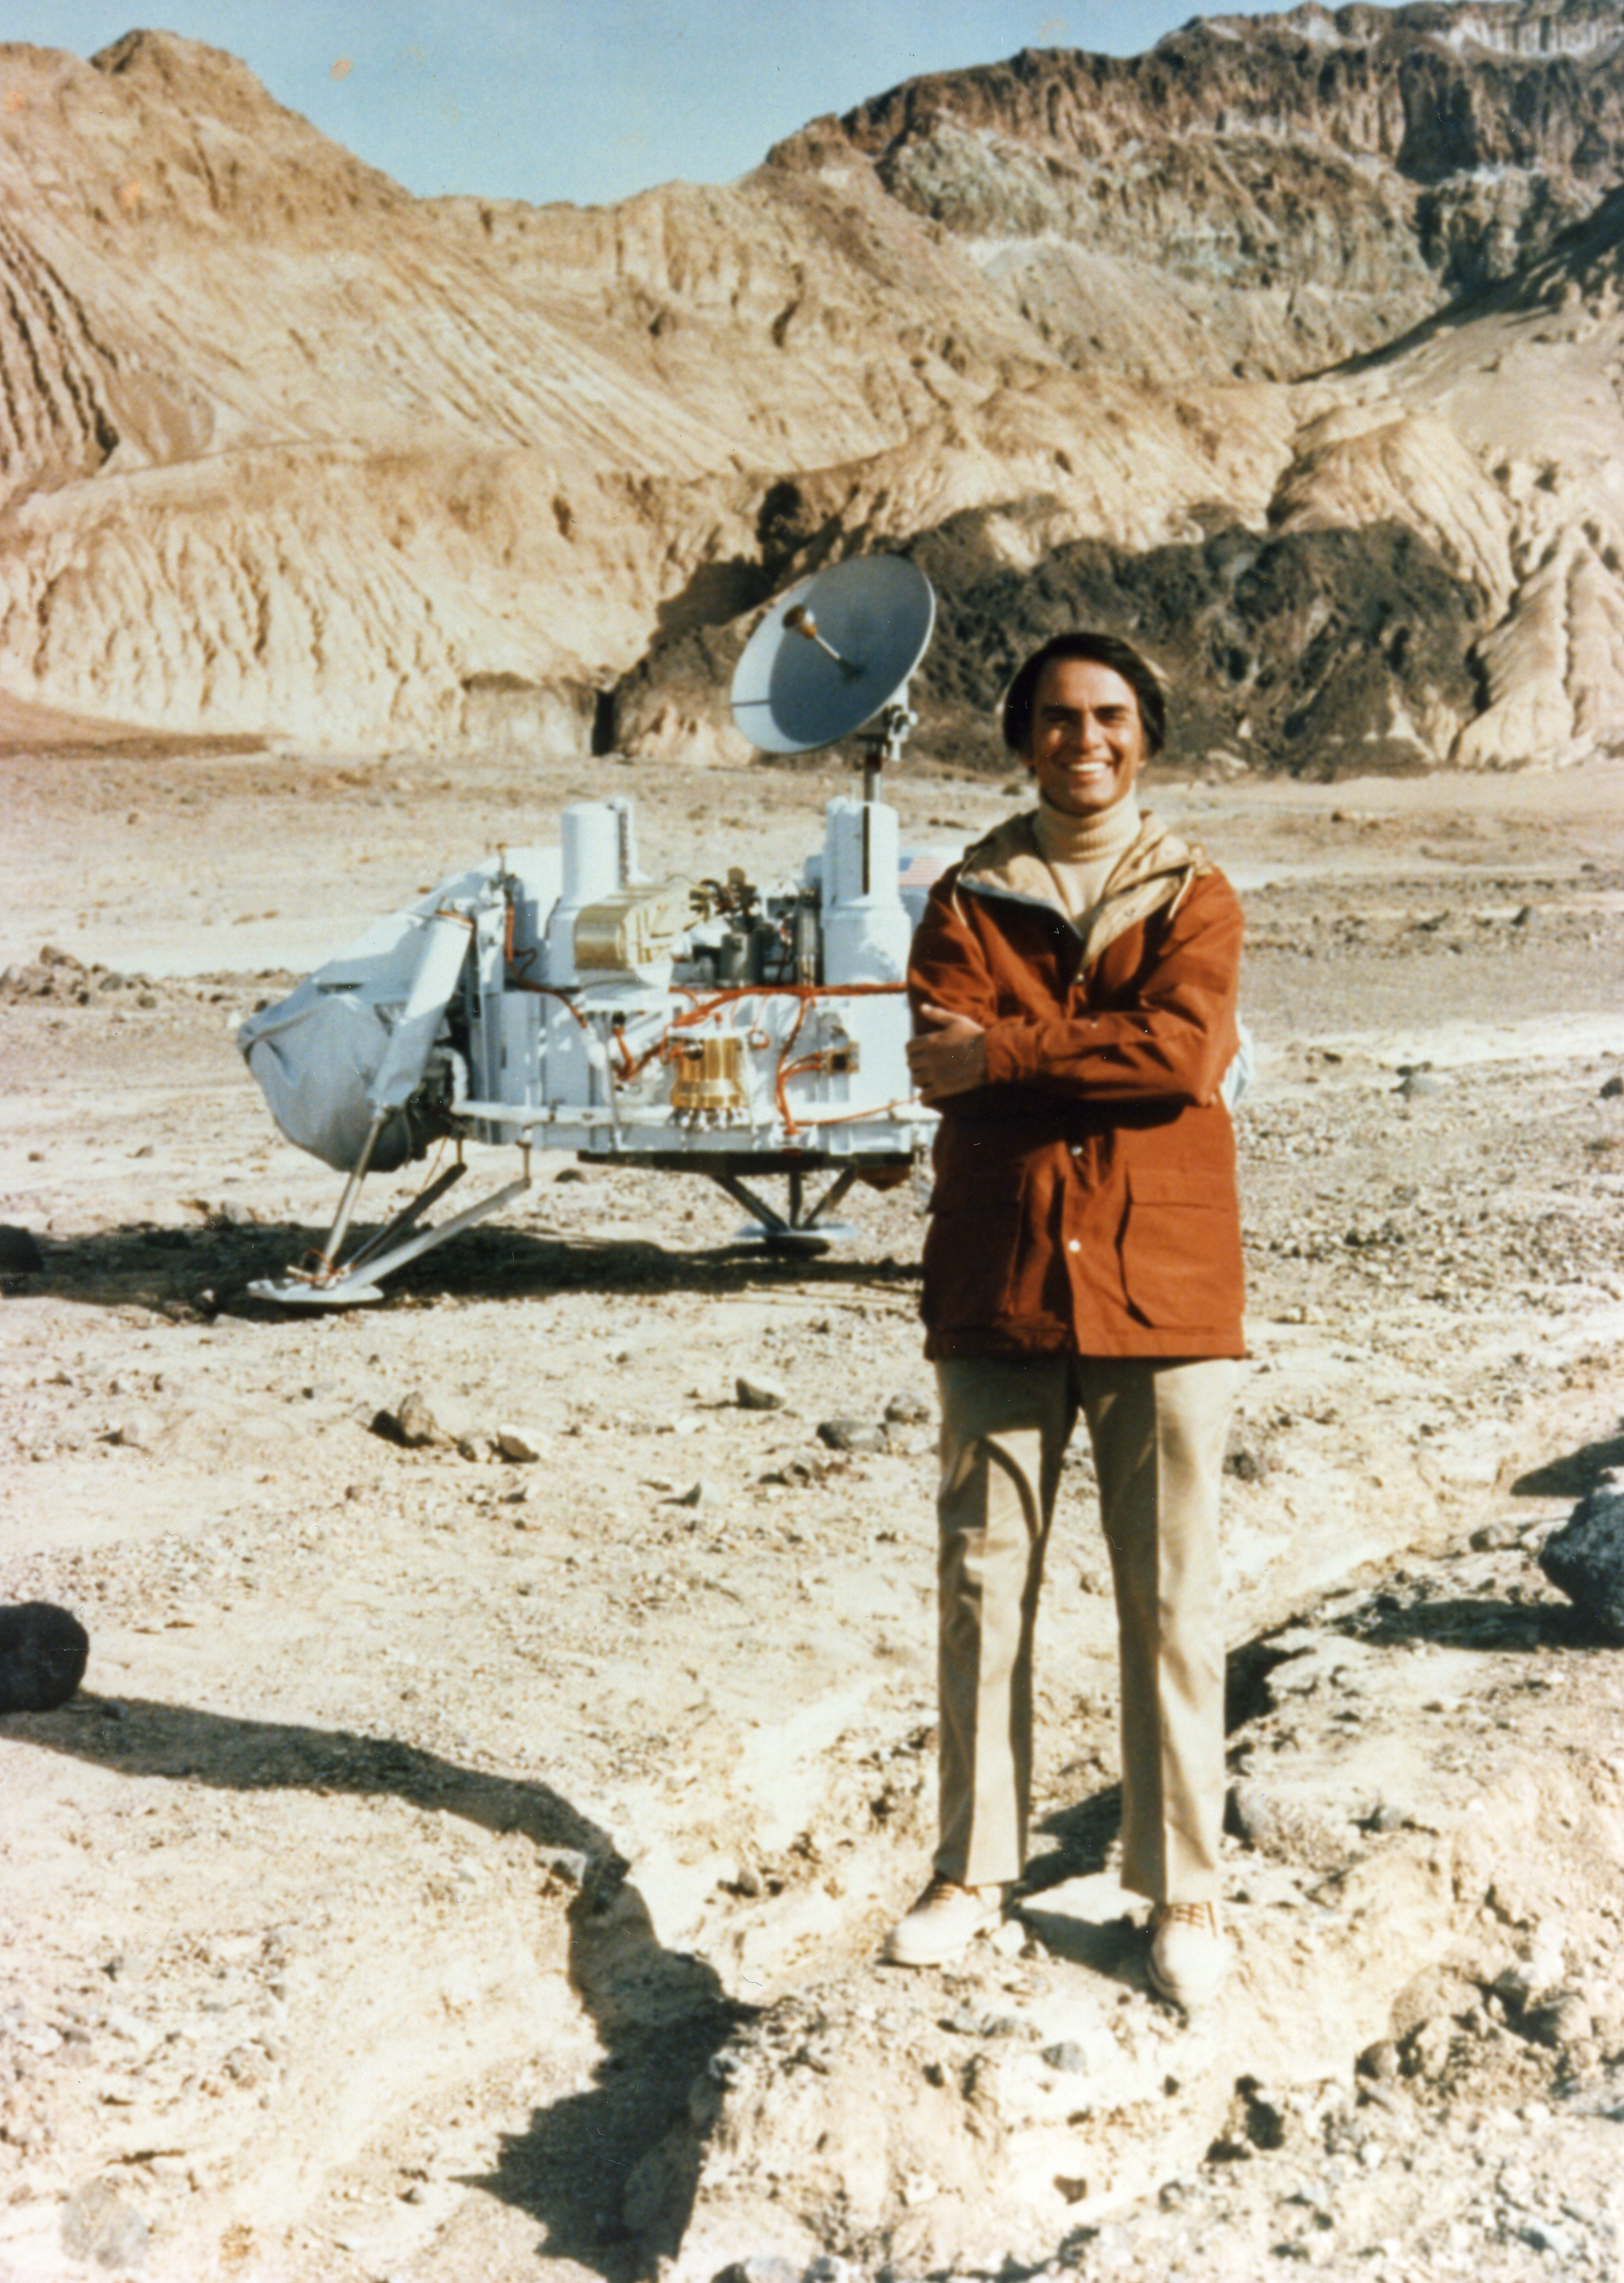 Carl Sagan in Death Valley with the Mars space probe, 1979.